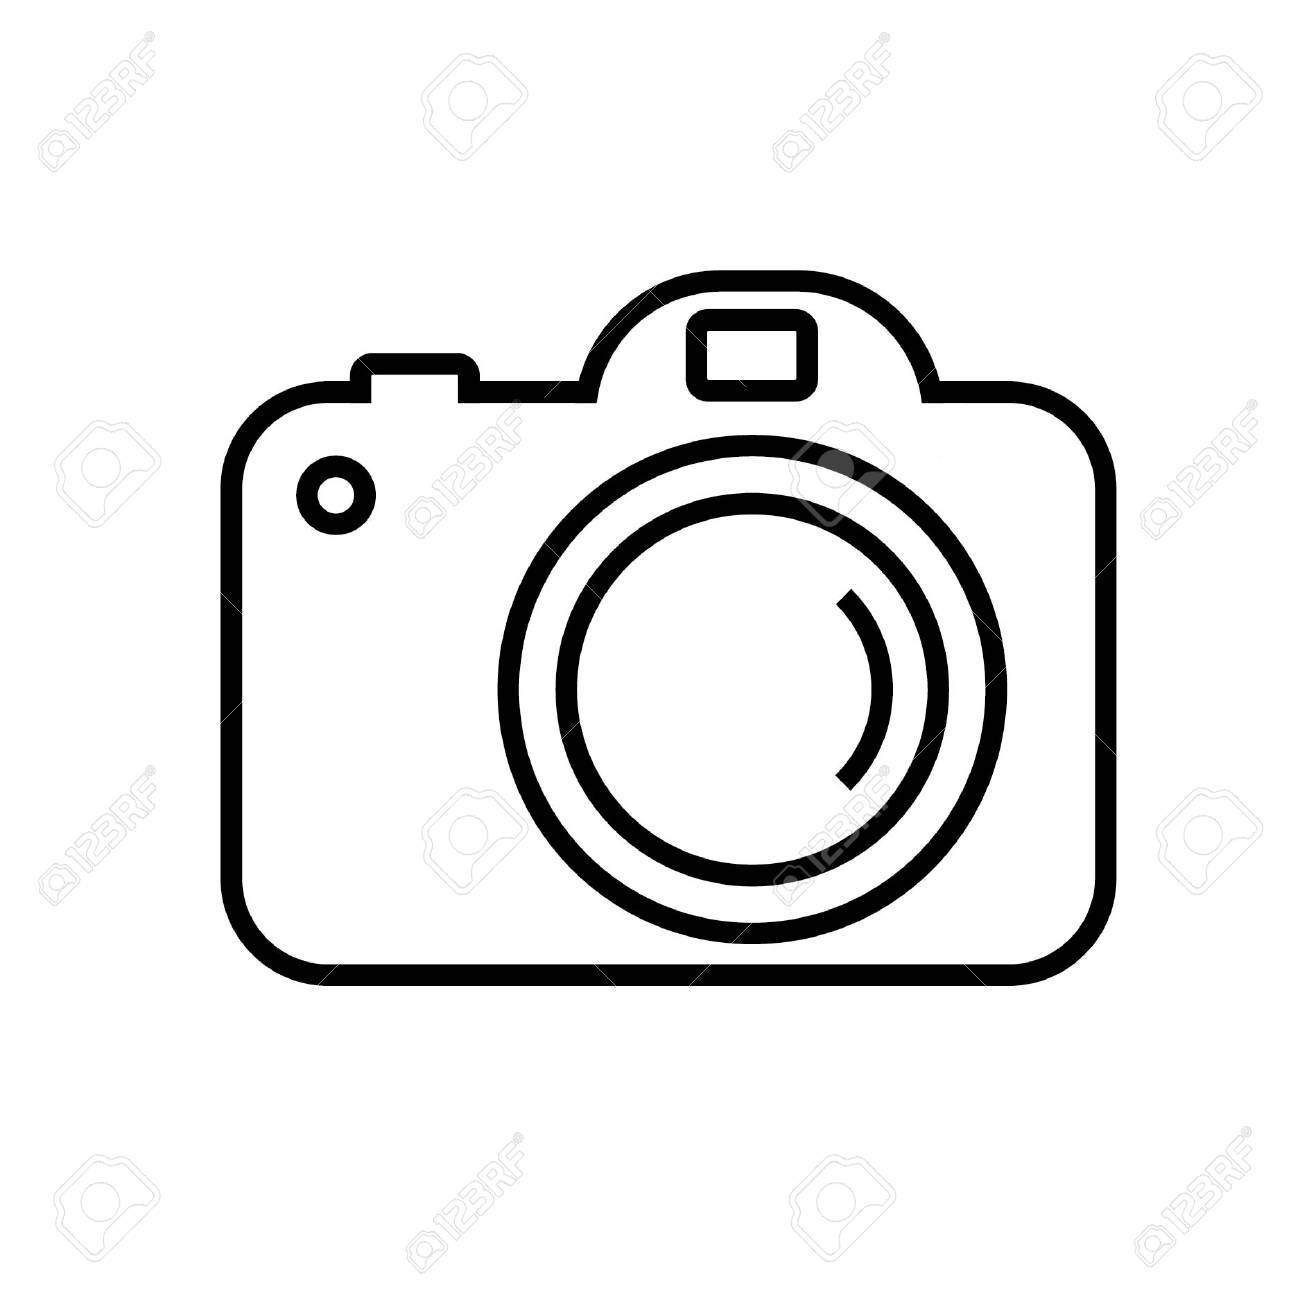 Camera white clipart image transparent stock Simple camera clipart black and white 3 » Clipart Portal image transparent stock